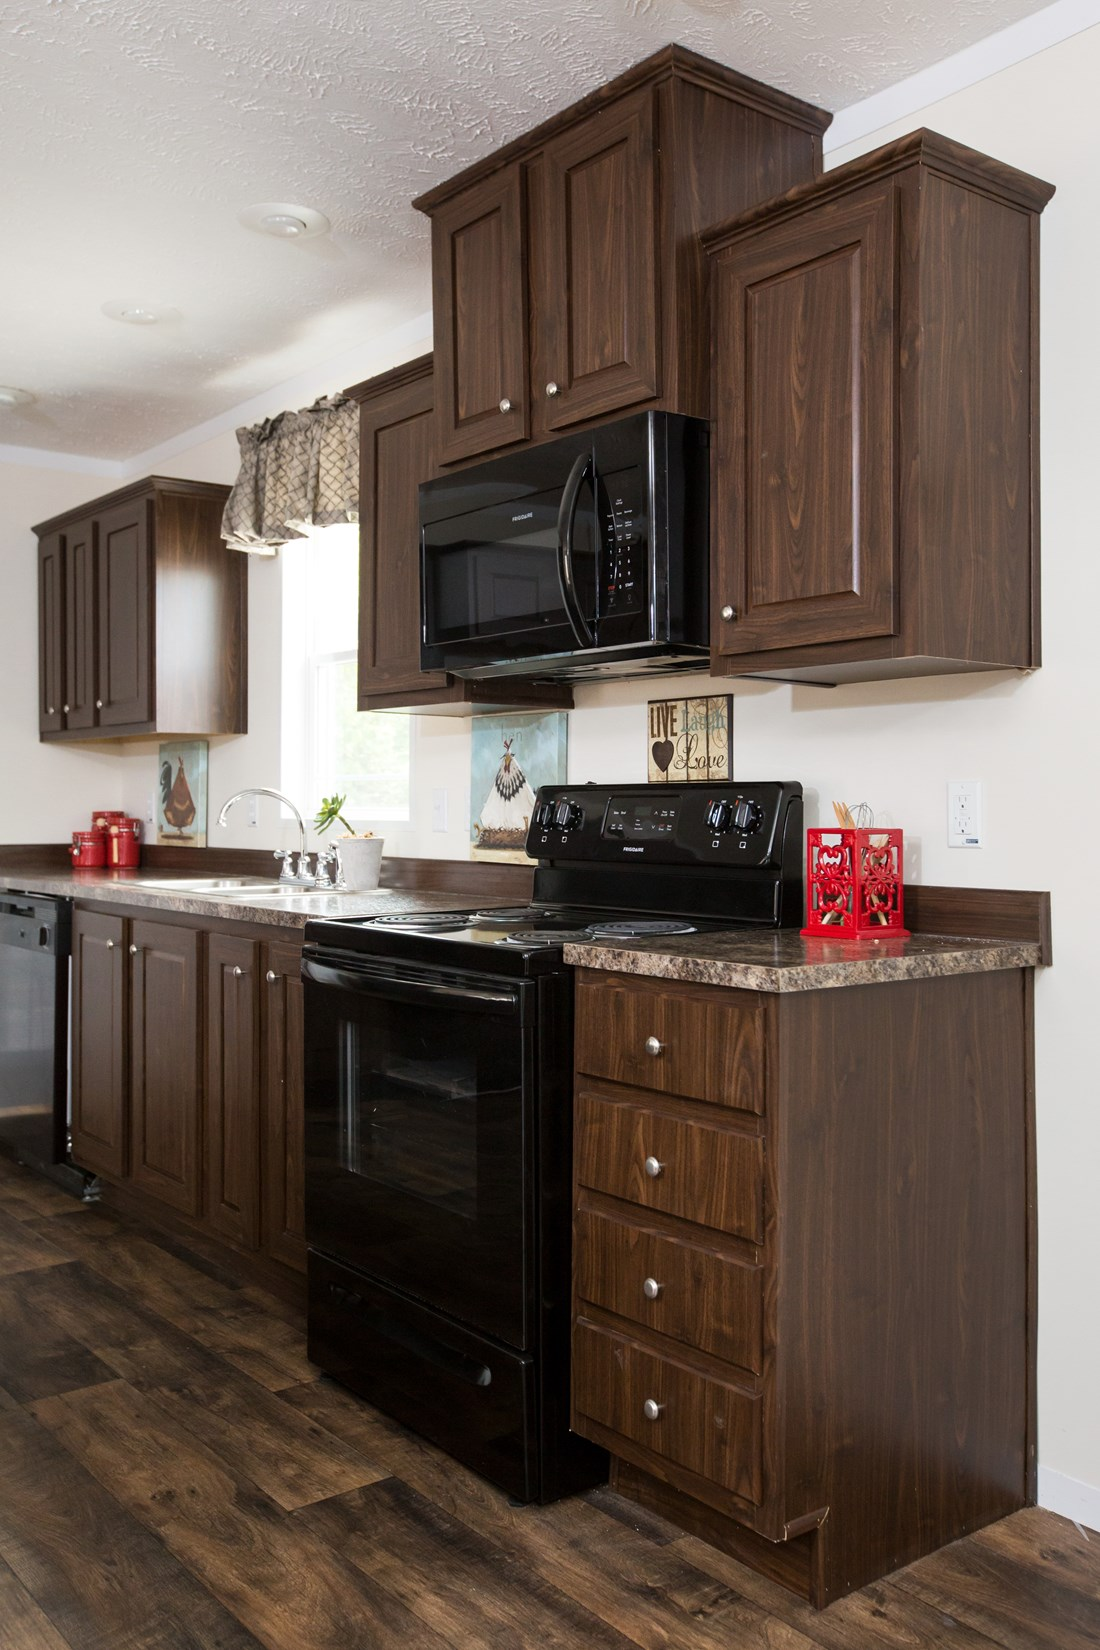 The RANGER 56B Kitchen. This Manufactured Mobile Home features 3 bedrooms and 2 baths.